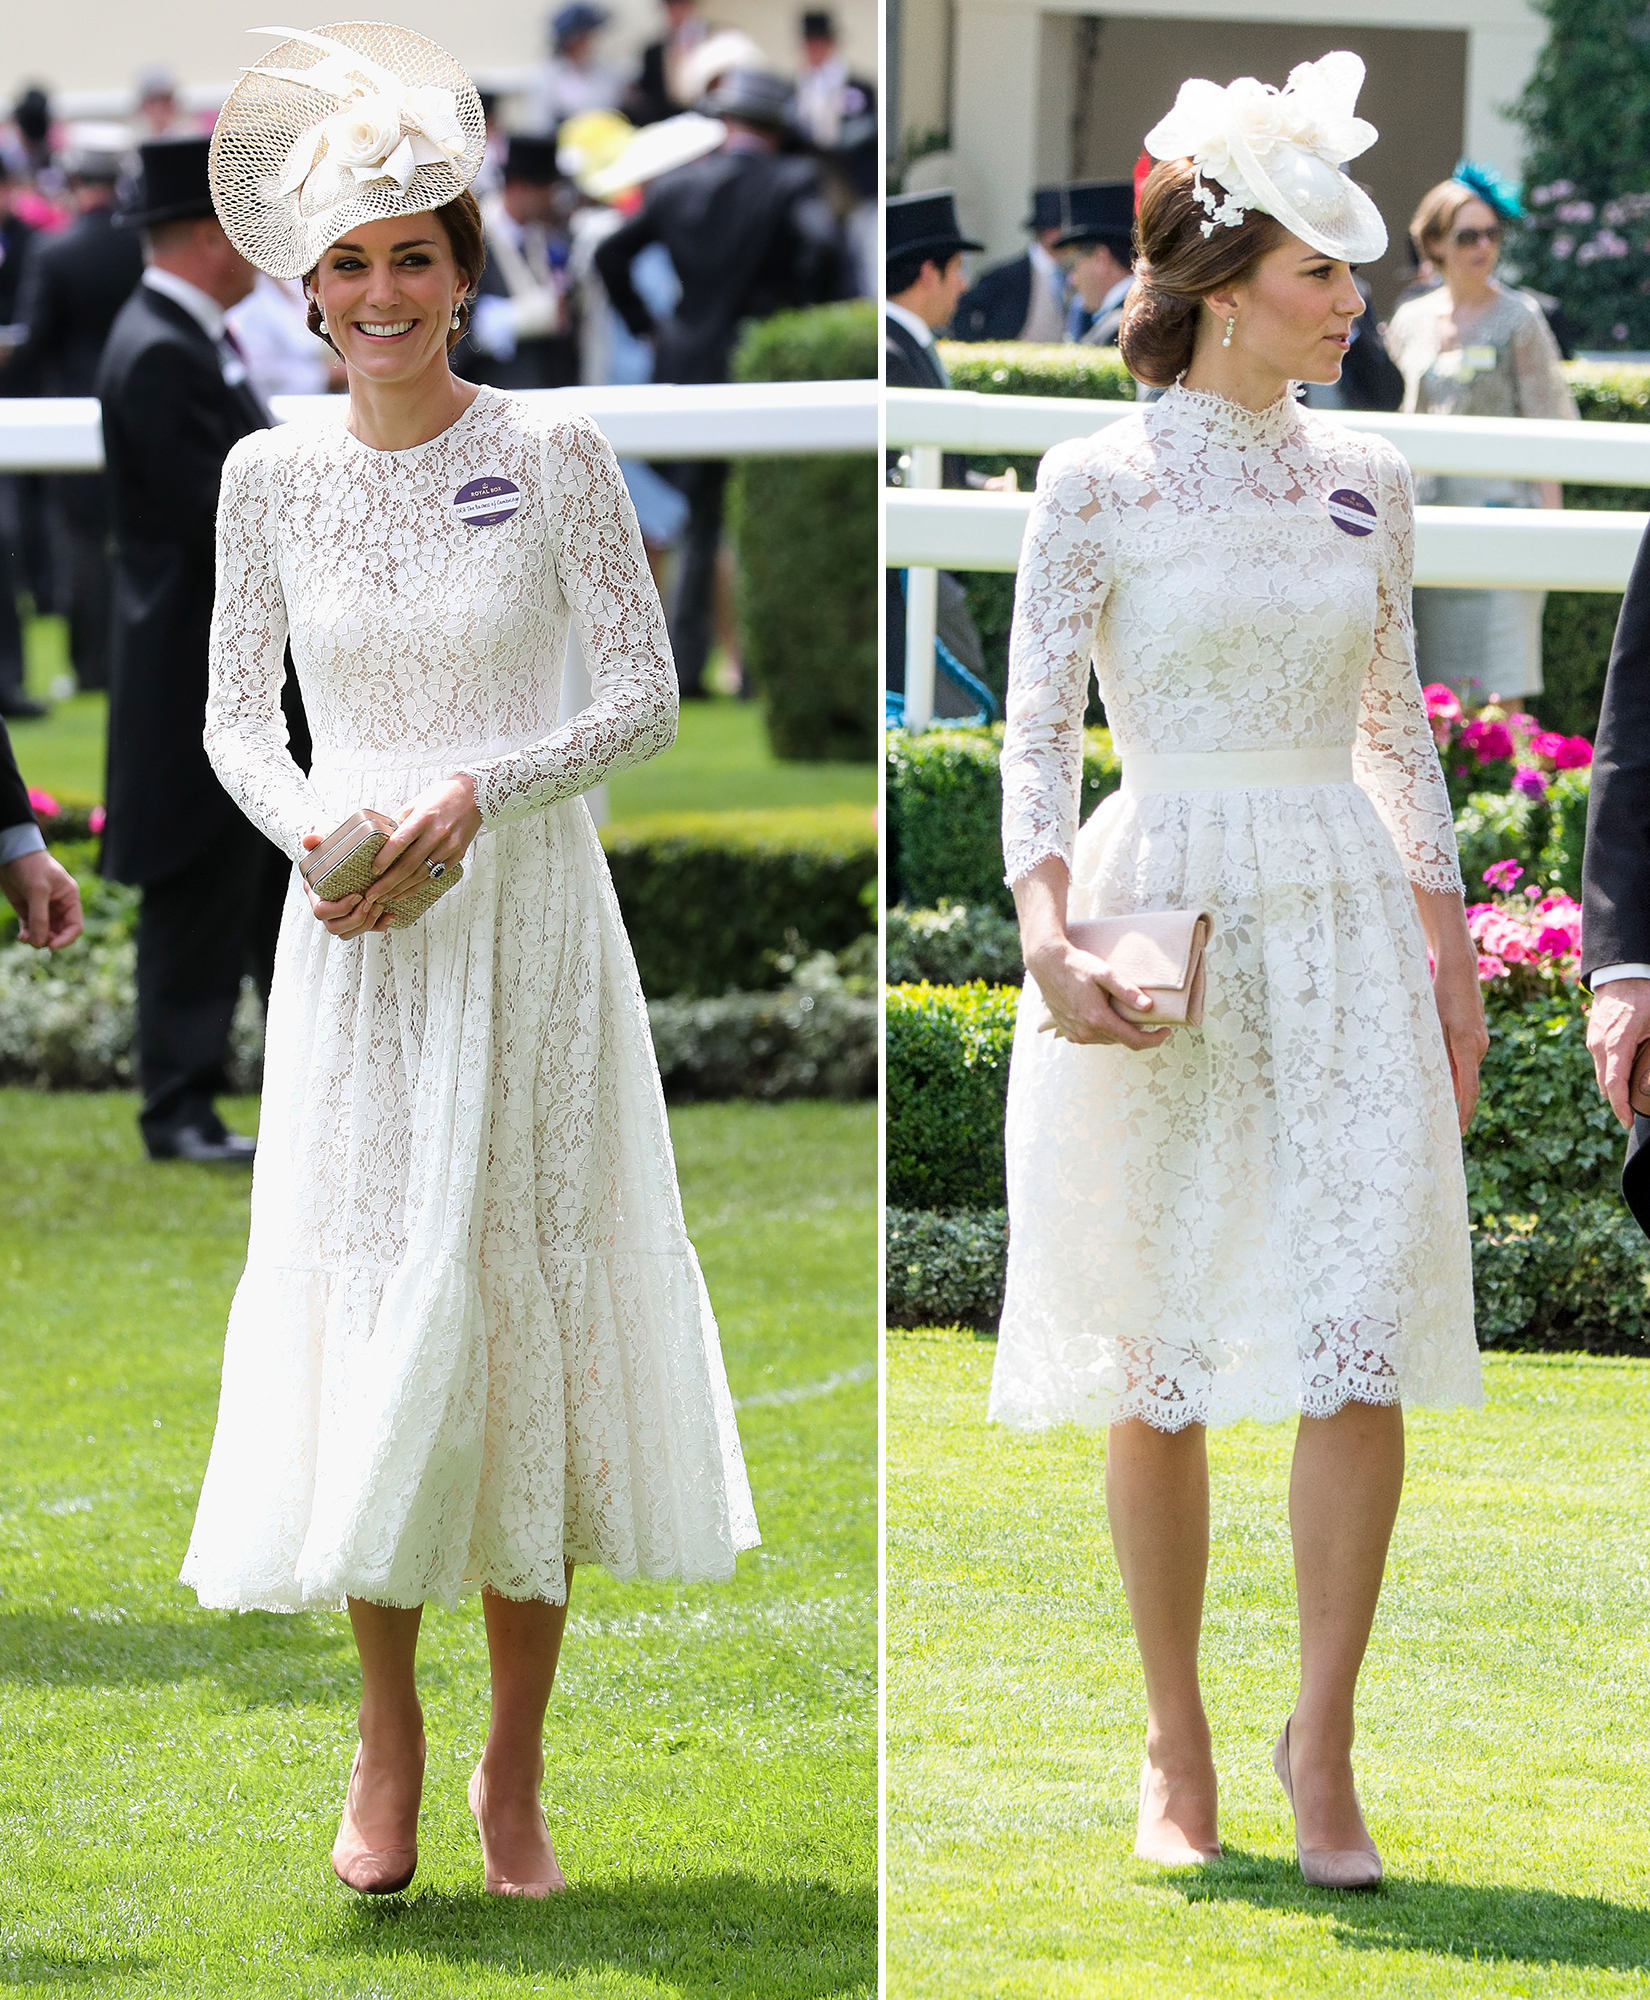 Duchess of Cambridge at royal ascot in white lace